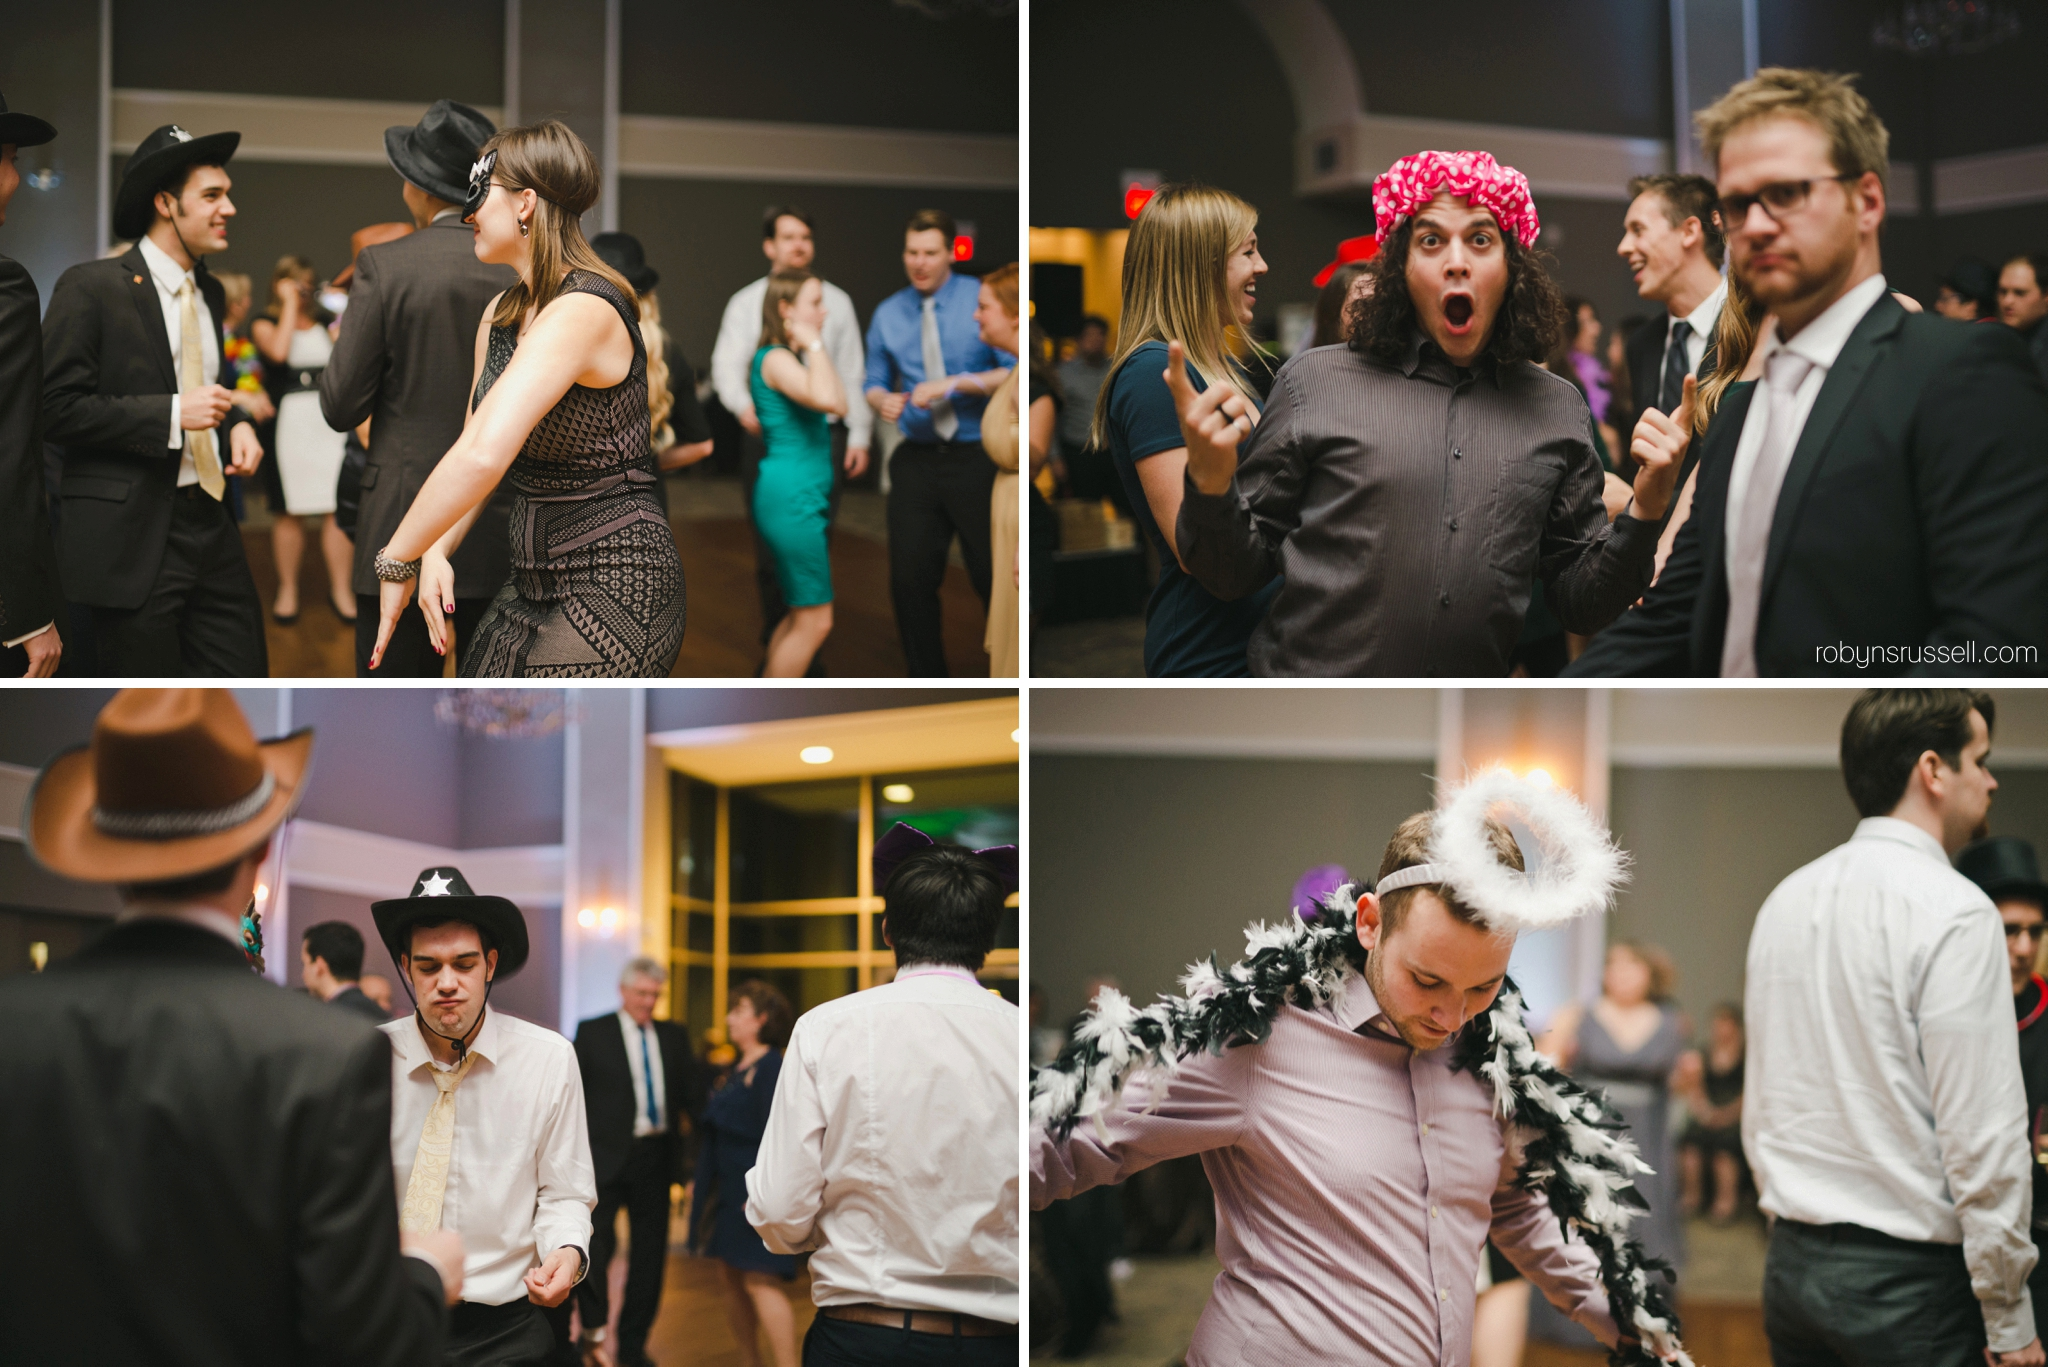 69-guests-at-wedding-reception-oakville-fall-inspired.jpg